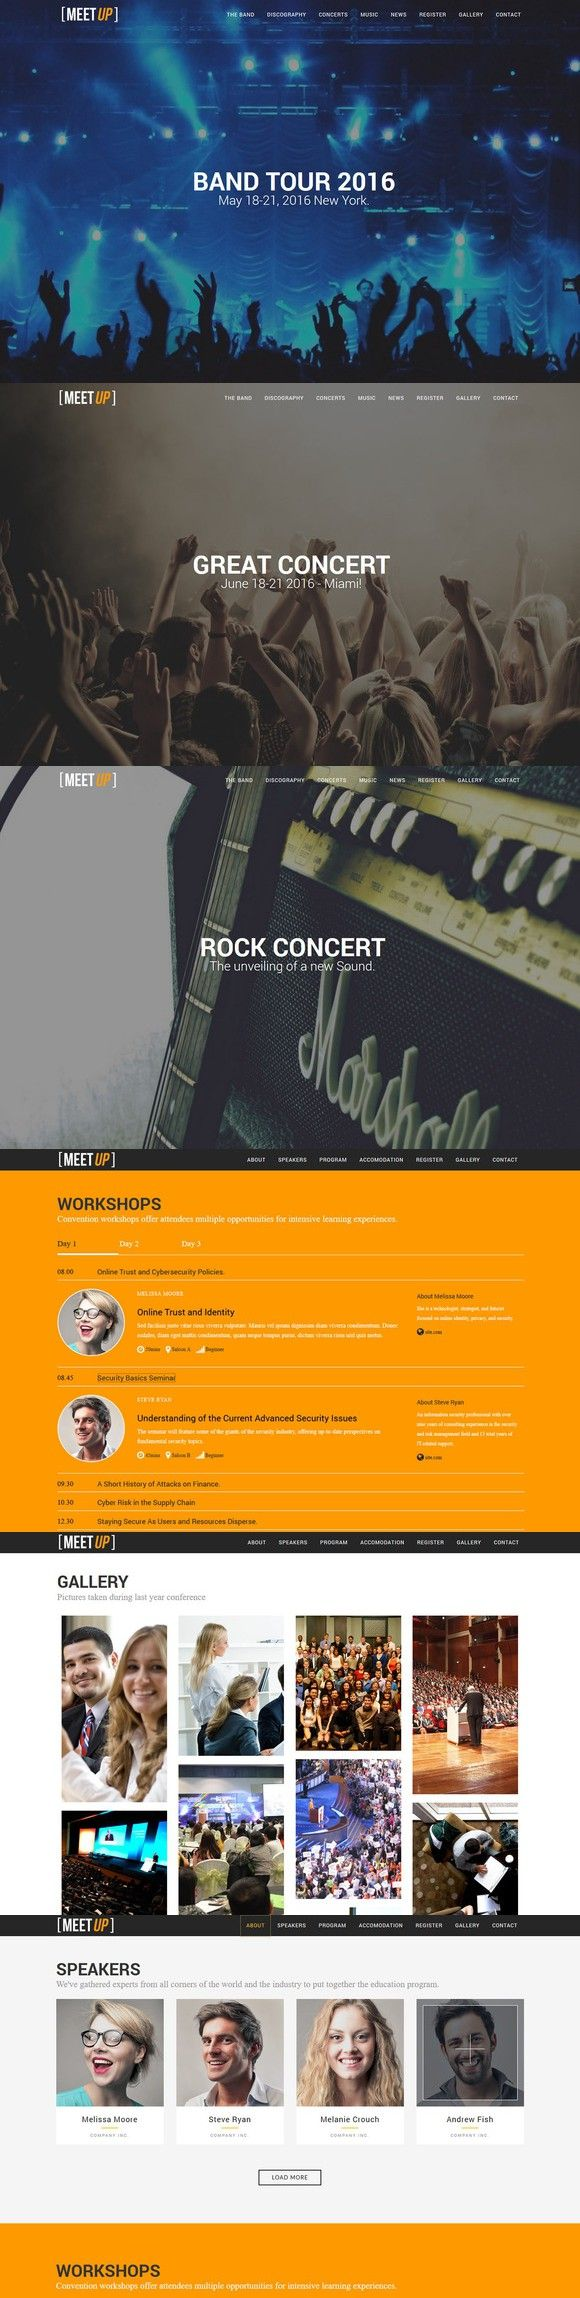 Meetup - Meeting/Convention Template. HTML/CSS Themes. $20.00